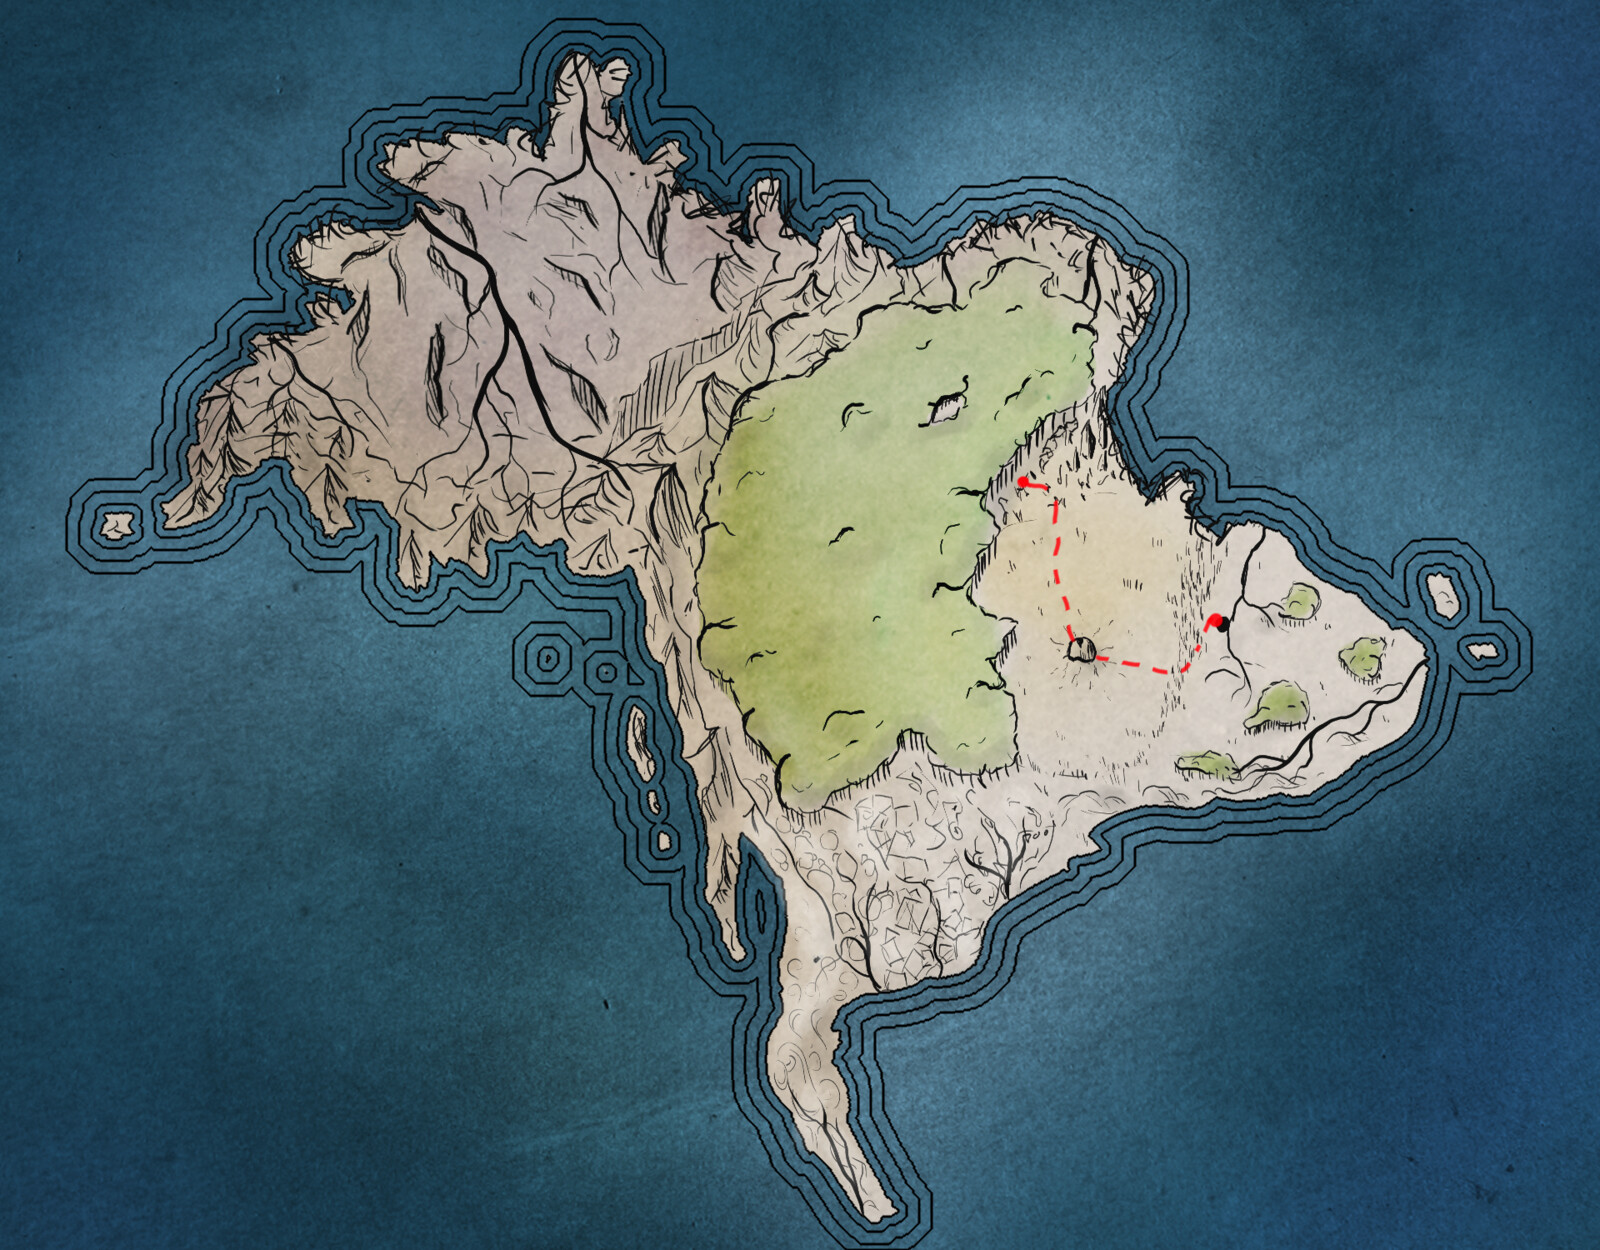 The continent of Aondal with hand drawn details.